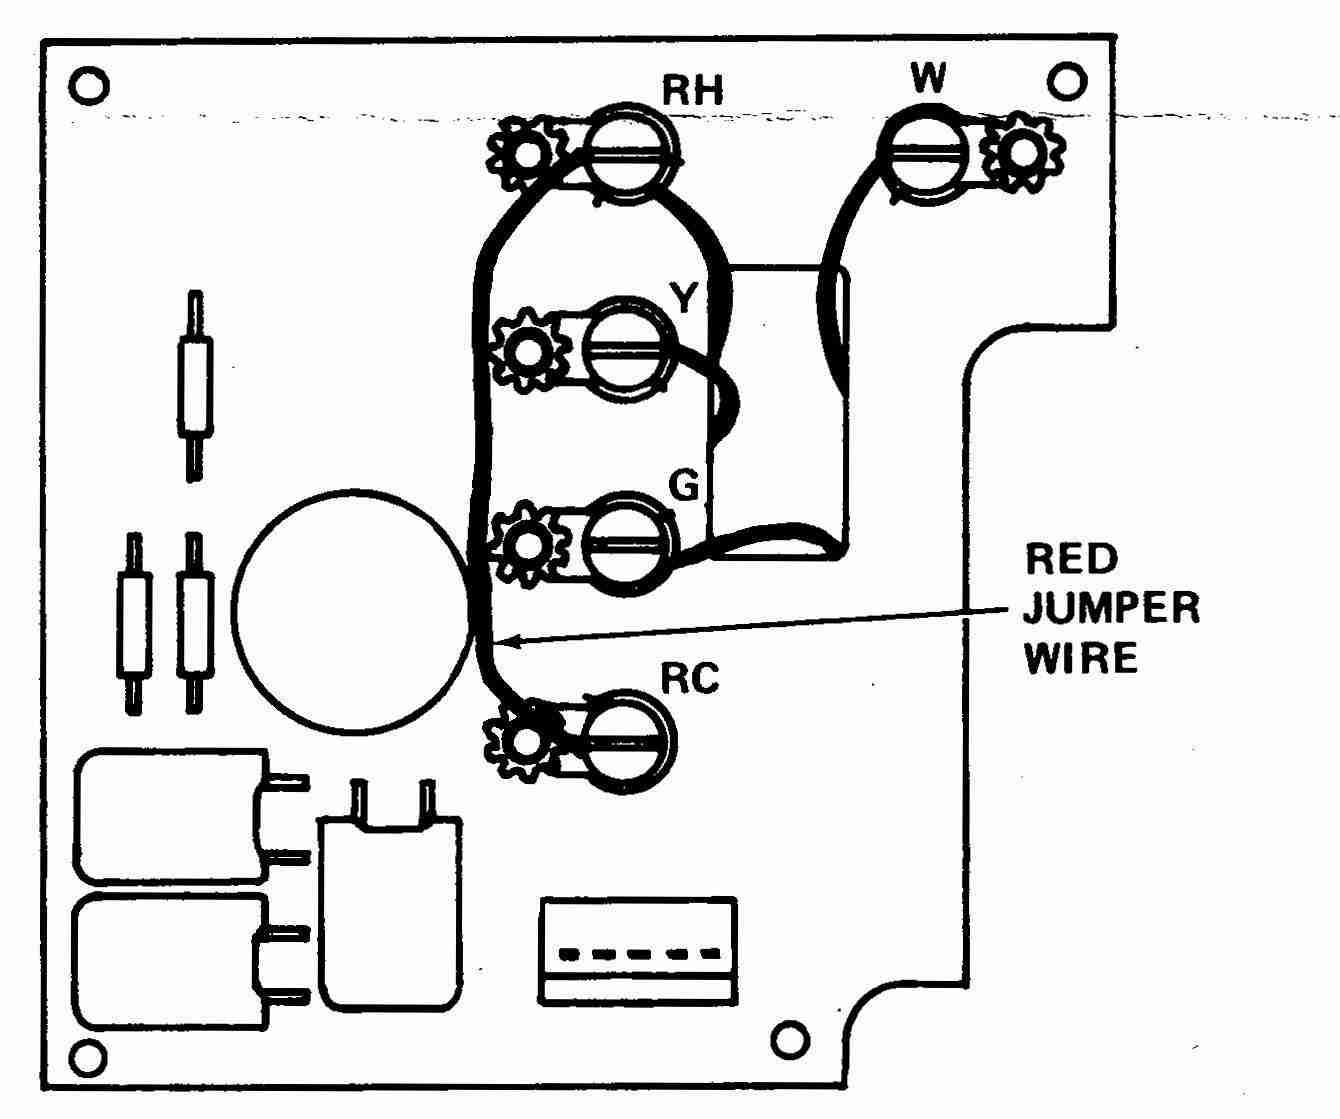 WR_1F90_006f16_DJFc how wire a white rodgers room thermostat, white rodgers thermostat white rodgers thermostat wiring diagram 1f80-361 at mifinder.co